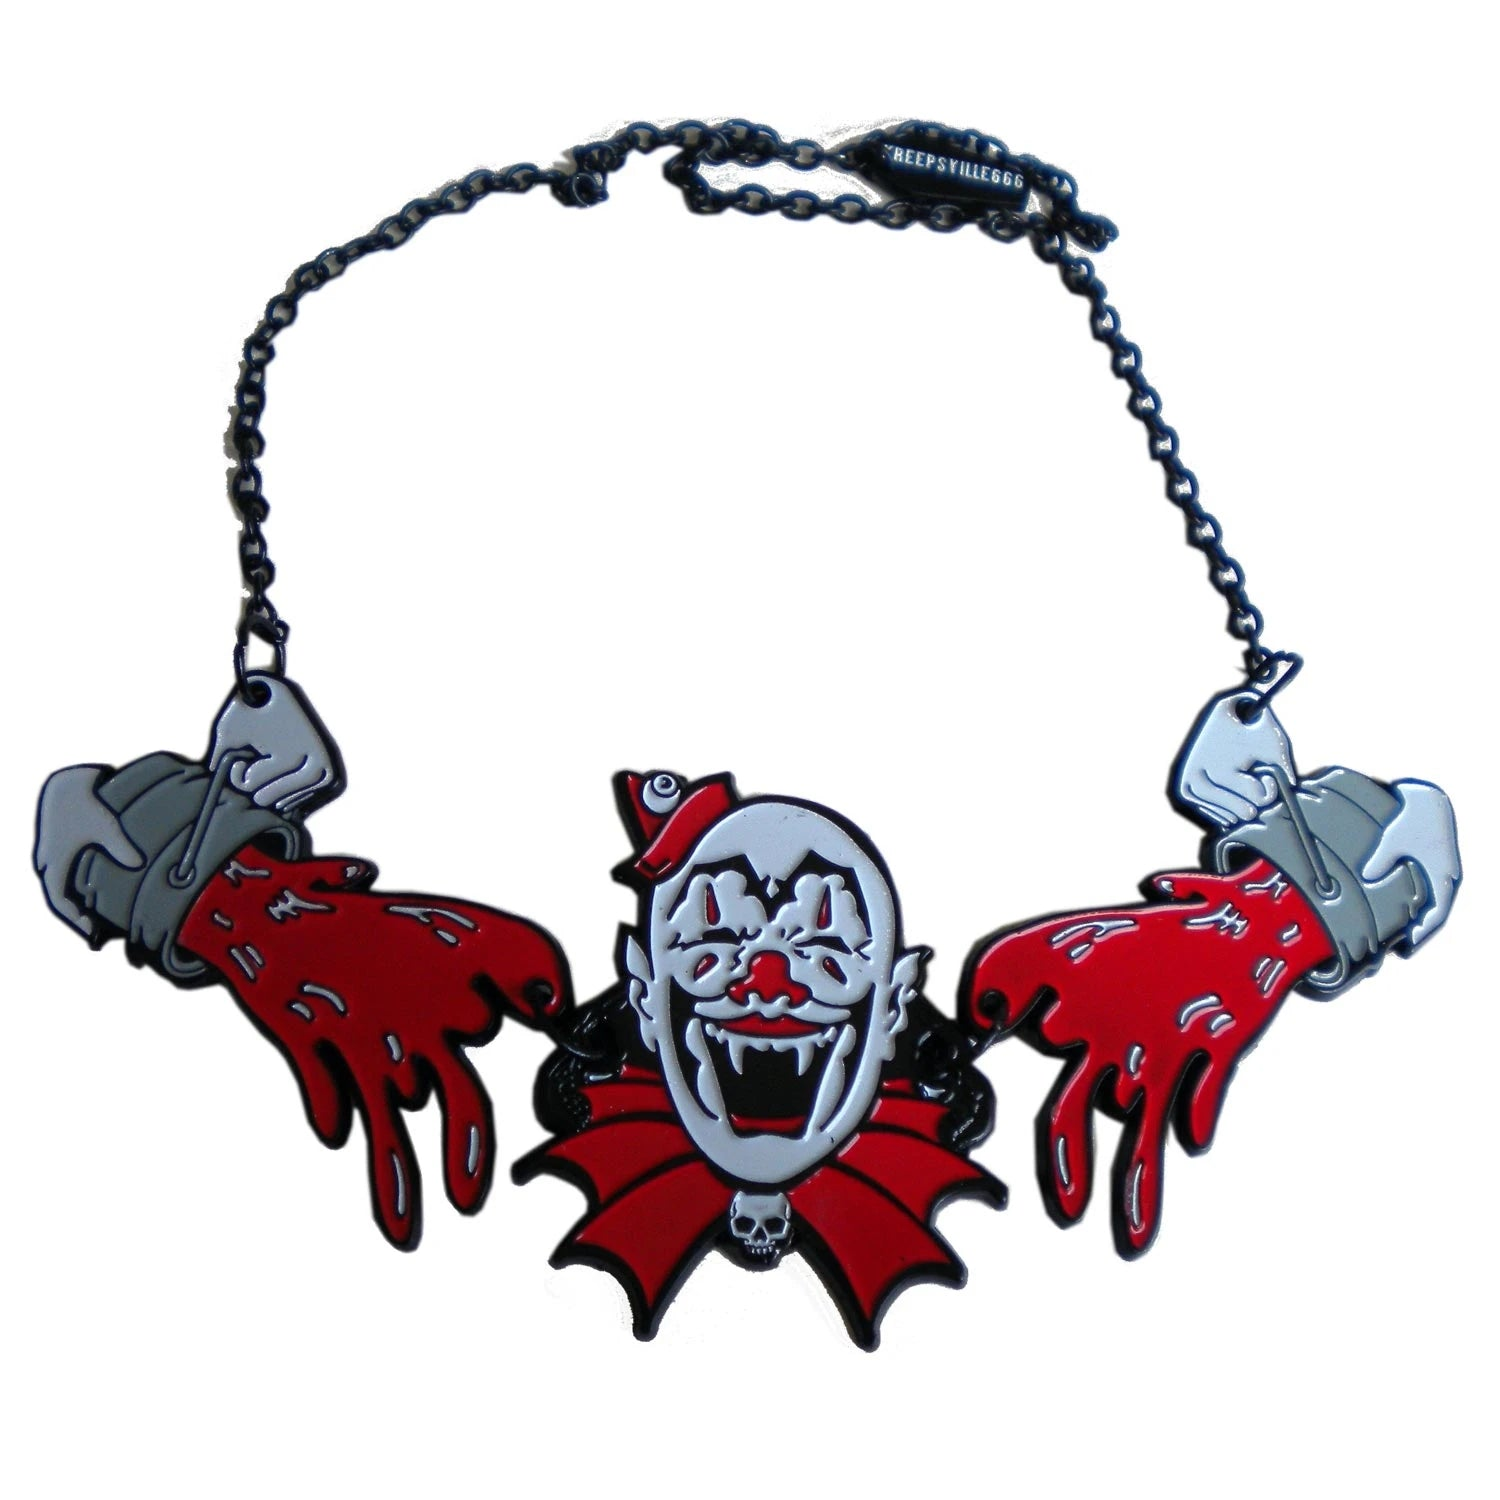 Creepy Clown Necklace by Kreepsville 666